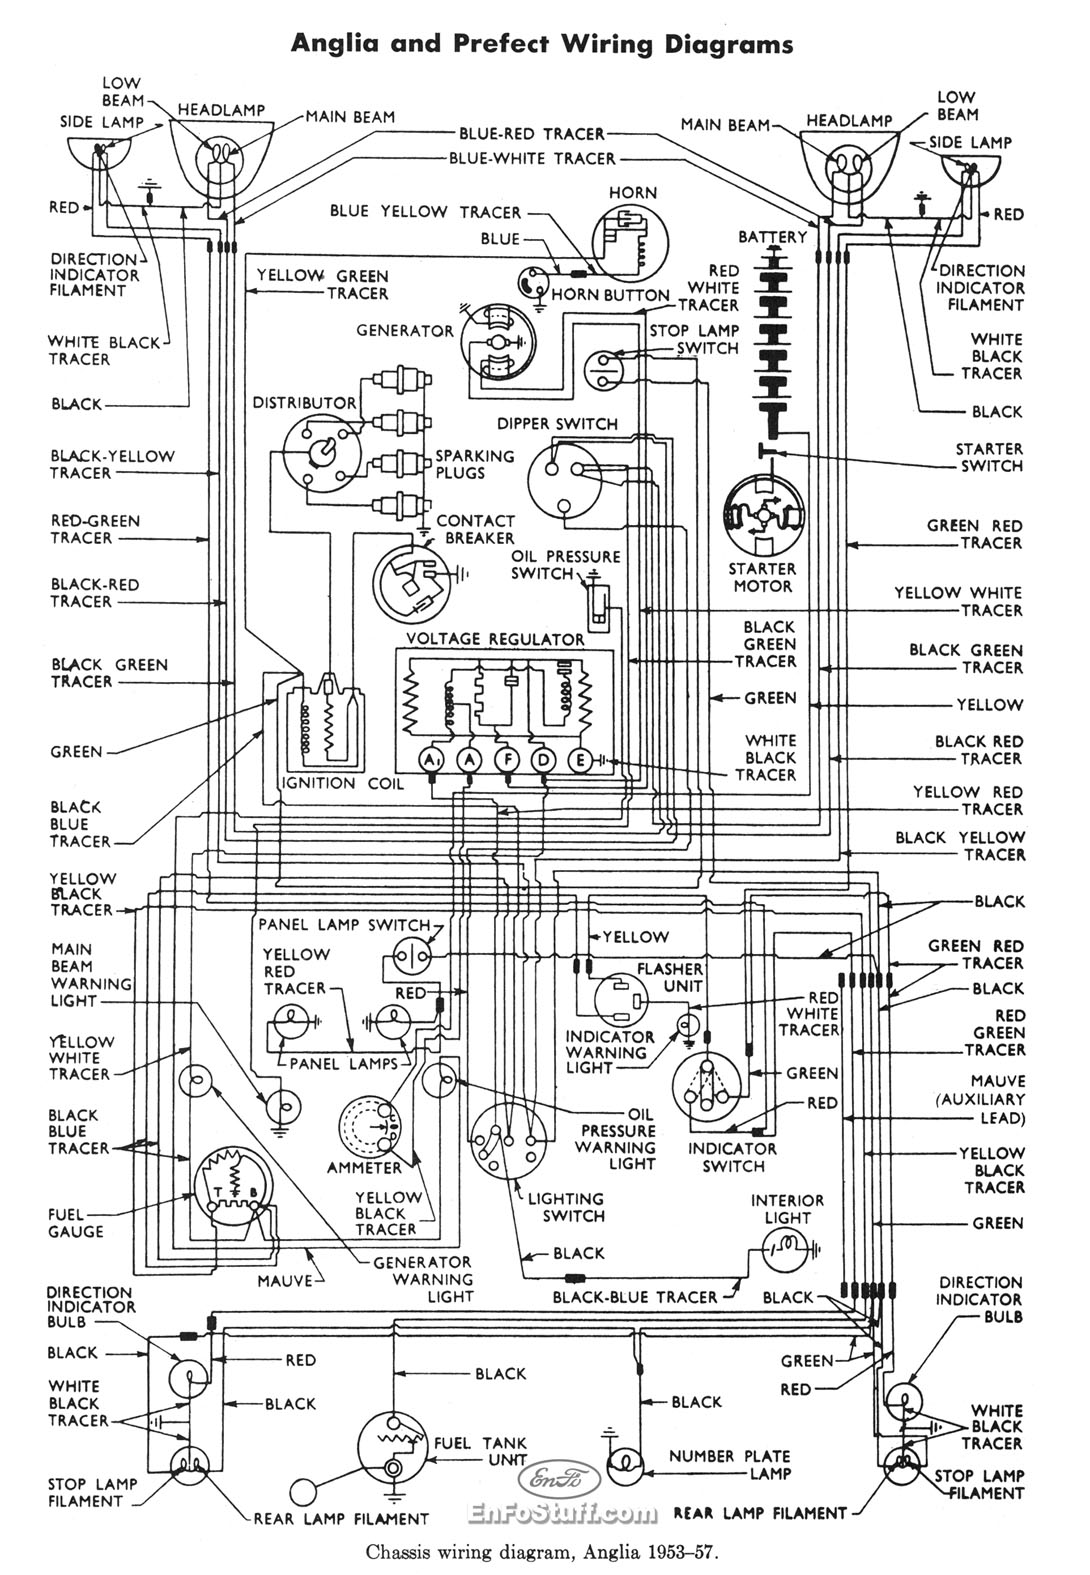 Wiring Diagram for Ford Anglia 1953-57